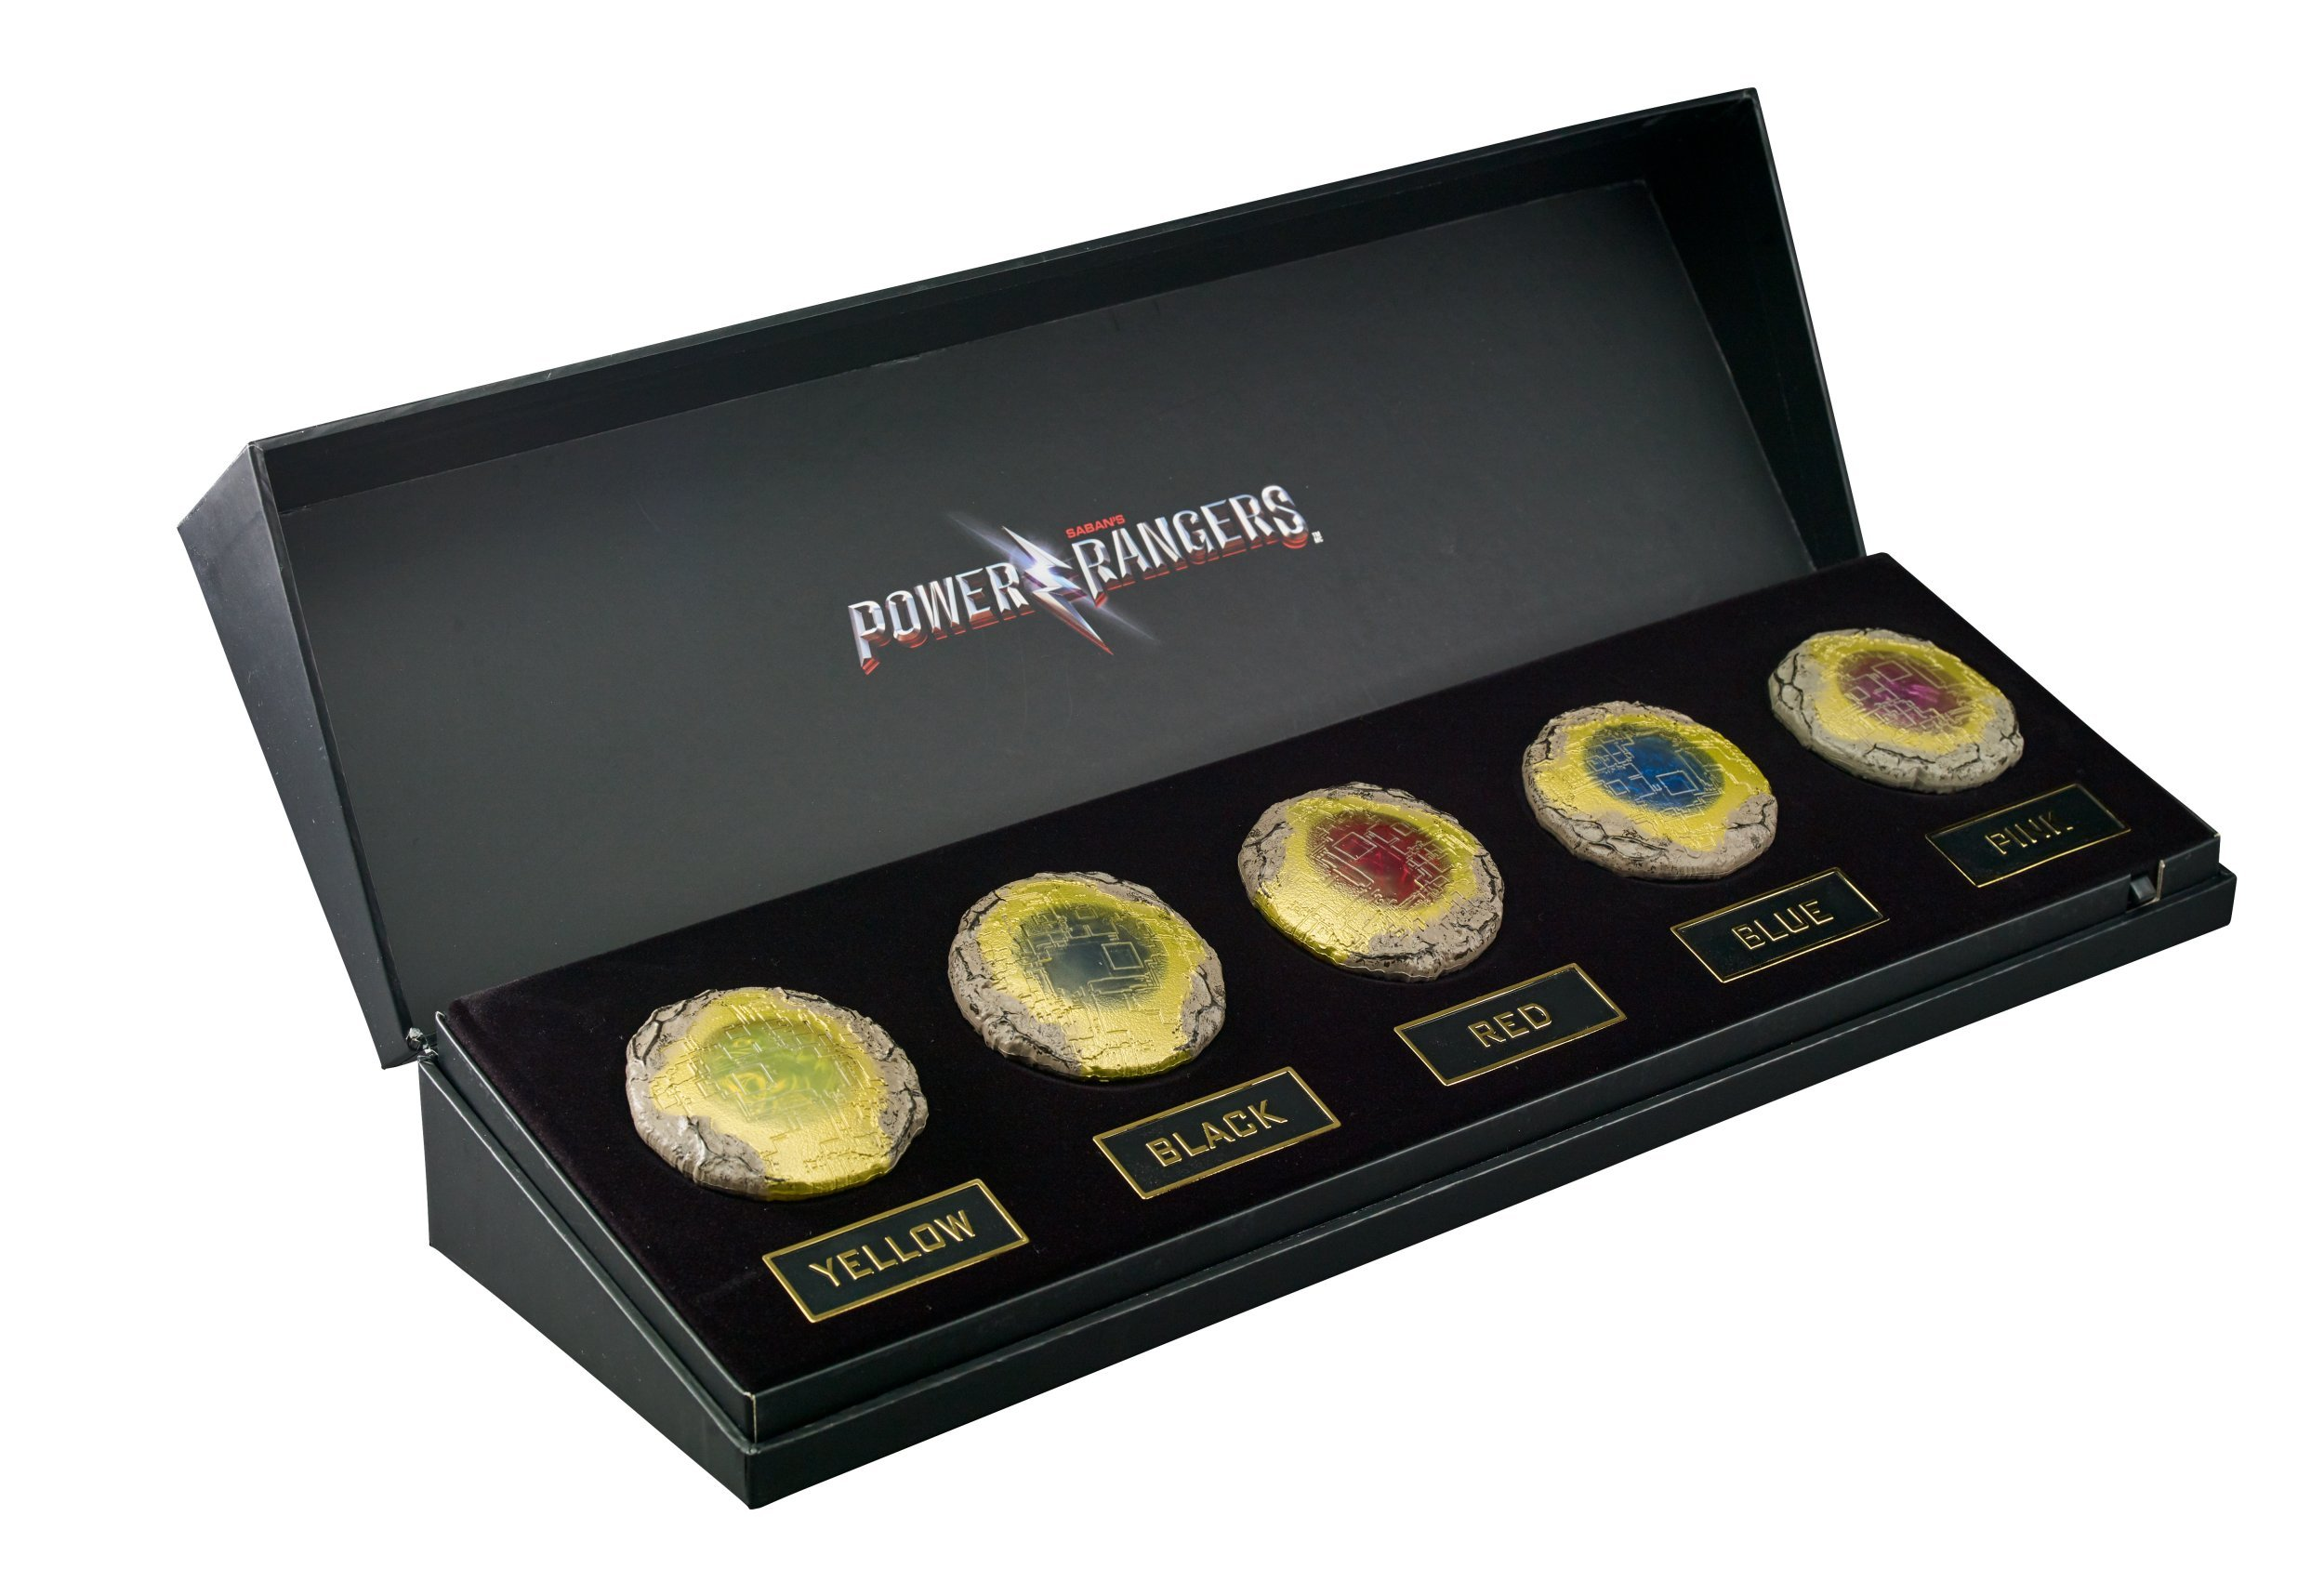 Power Rangers Movie Legacy Coins by Power Rangers (Image #1)